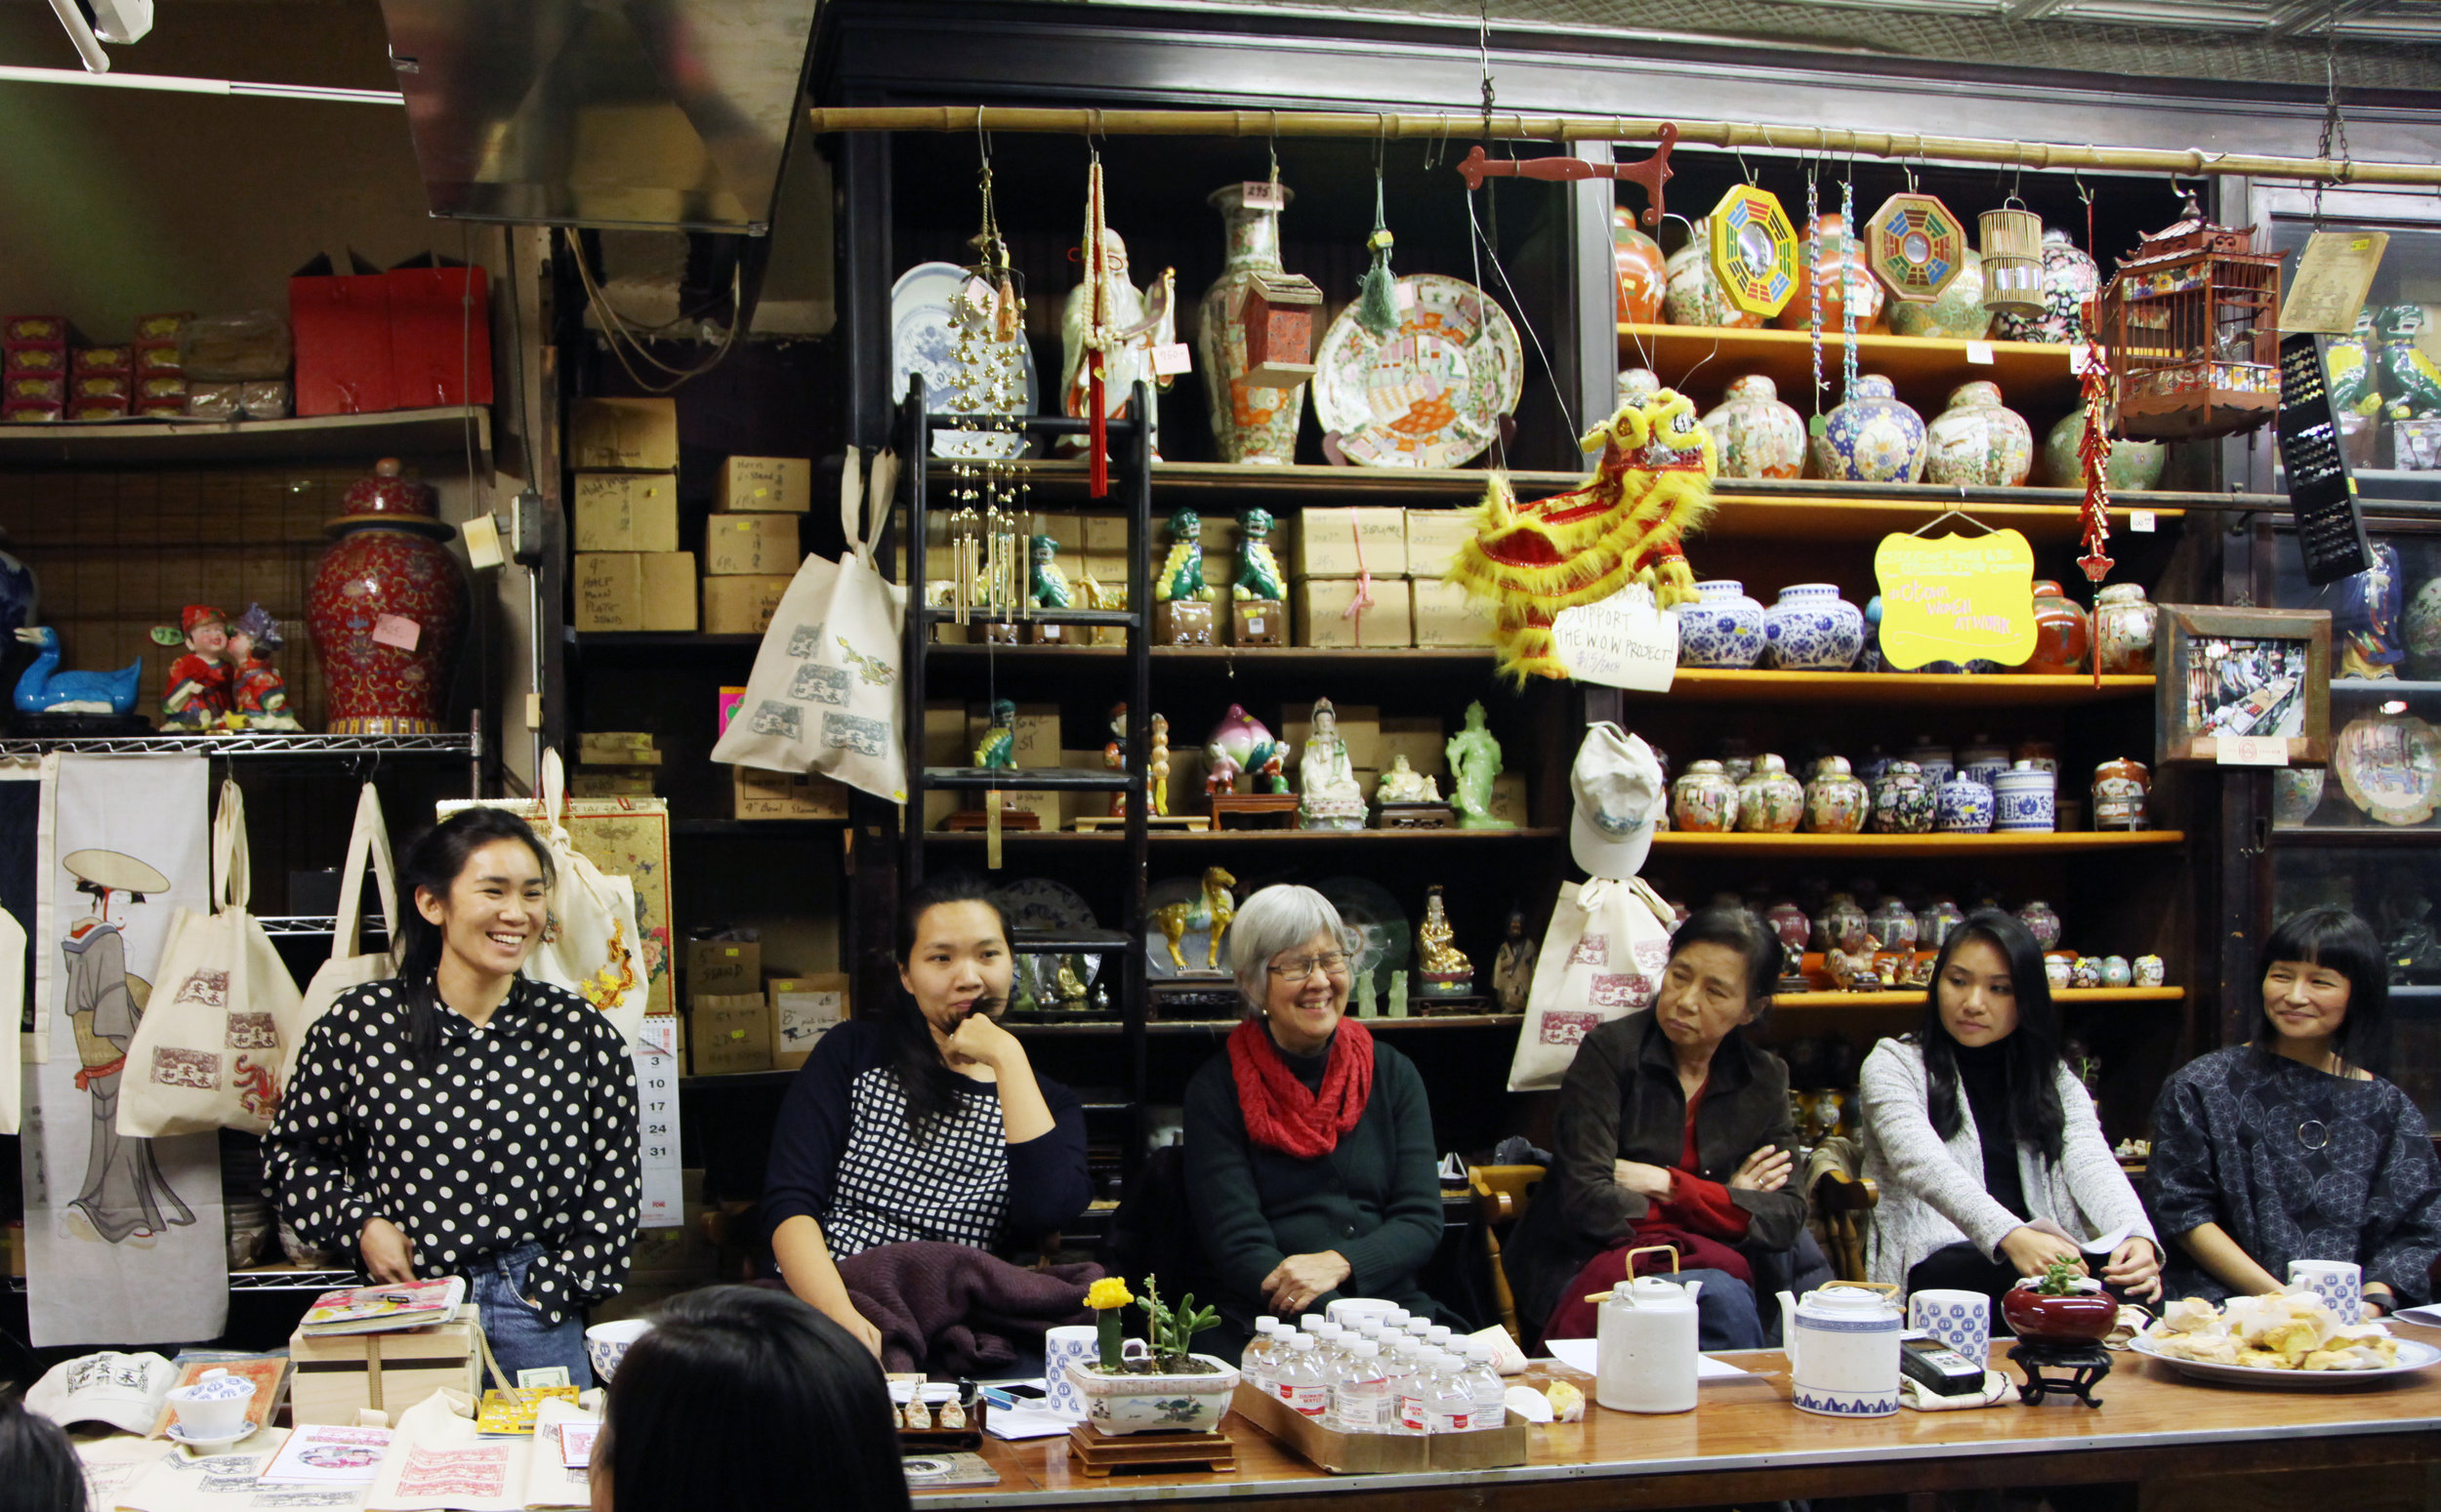 From left to right: Mei Lum, Lena Sze, May Ying Chen, Ching Yeh Chen, Sophia Ng & Cynthia Lee